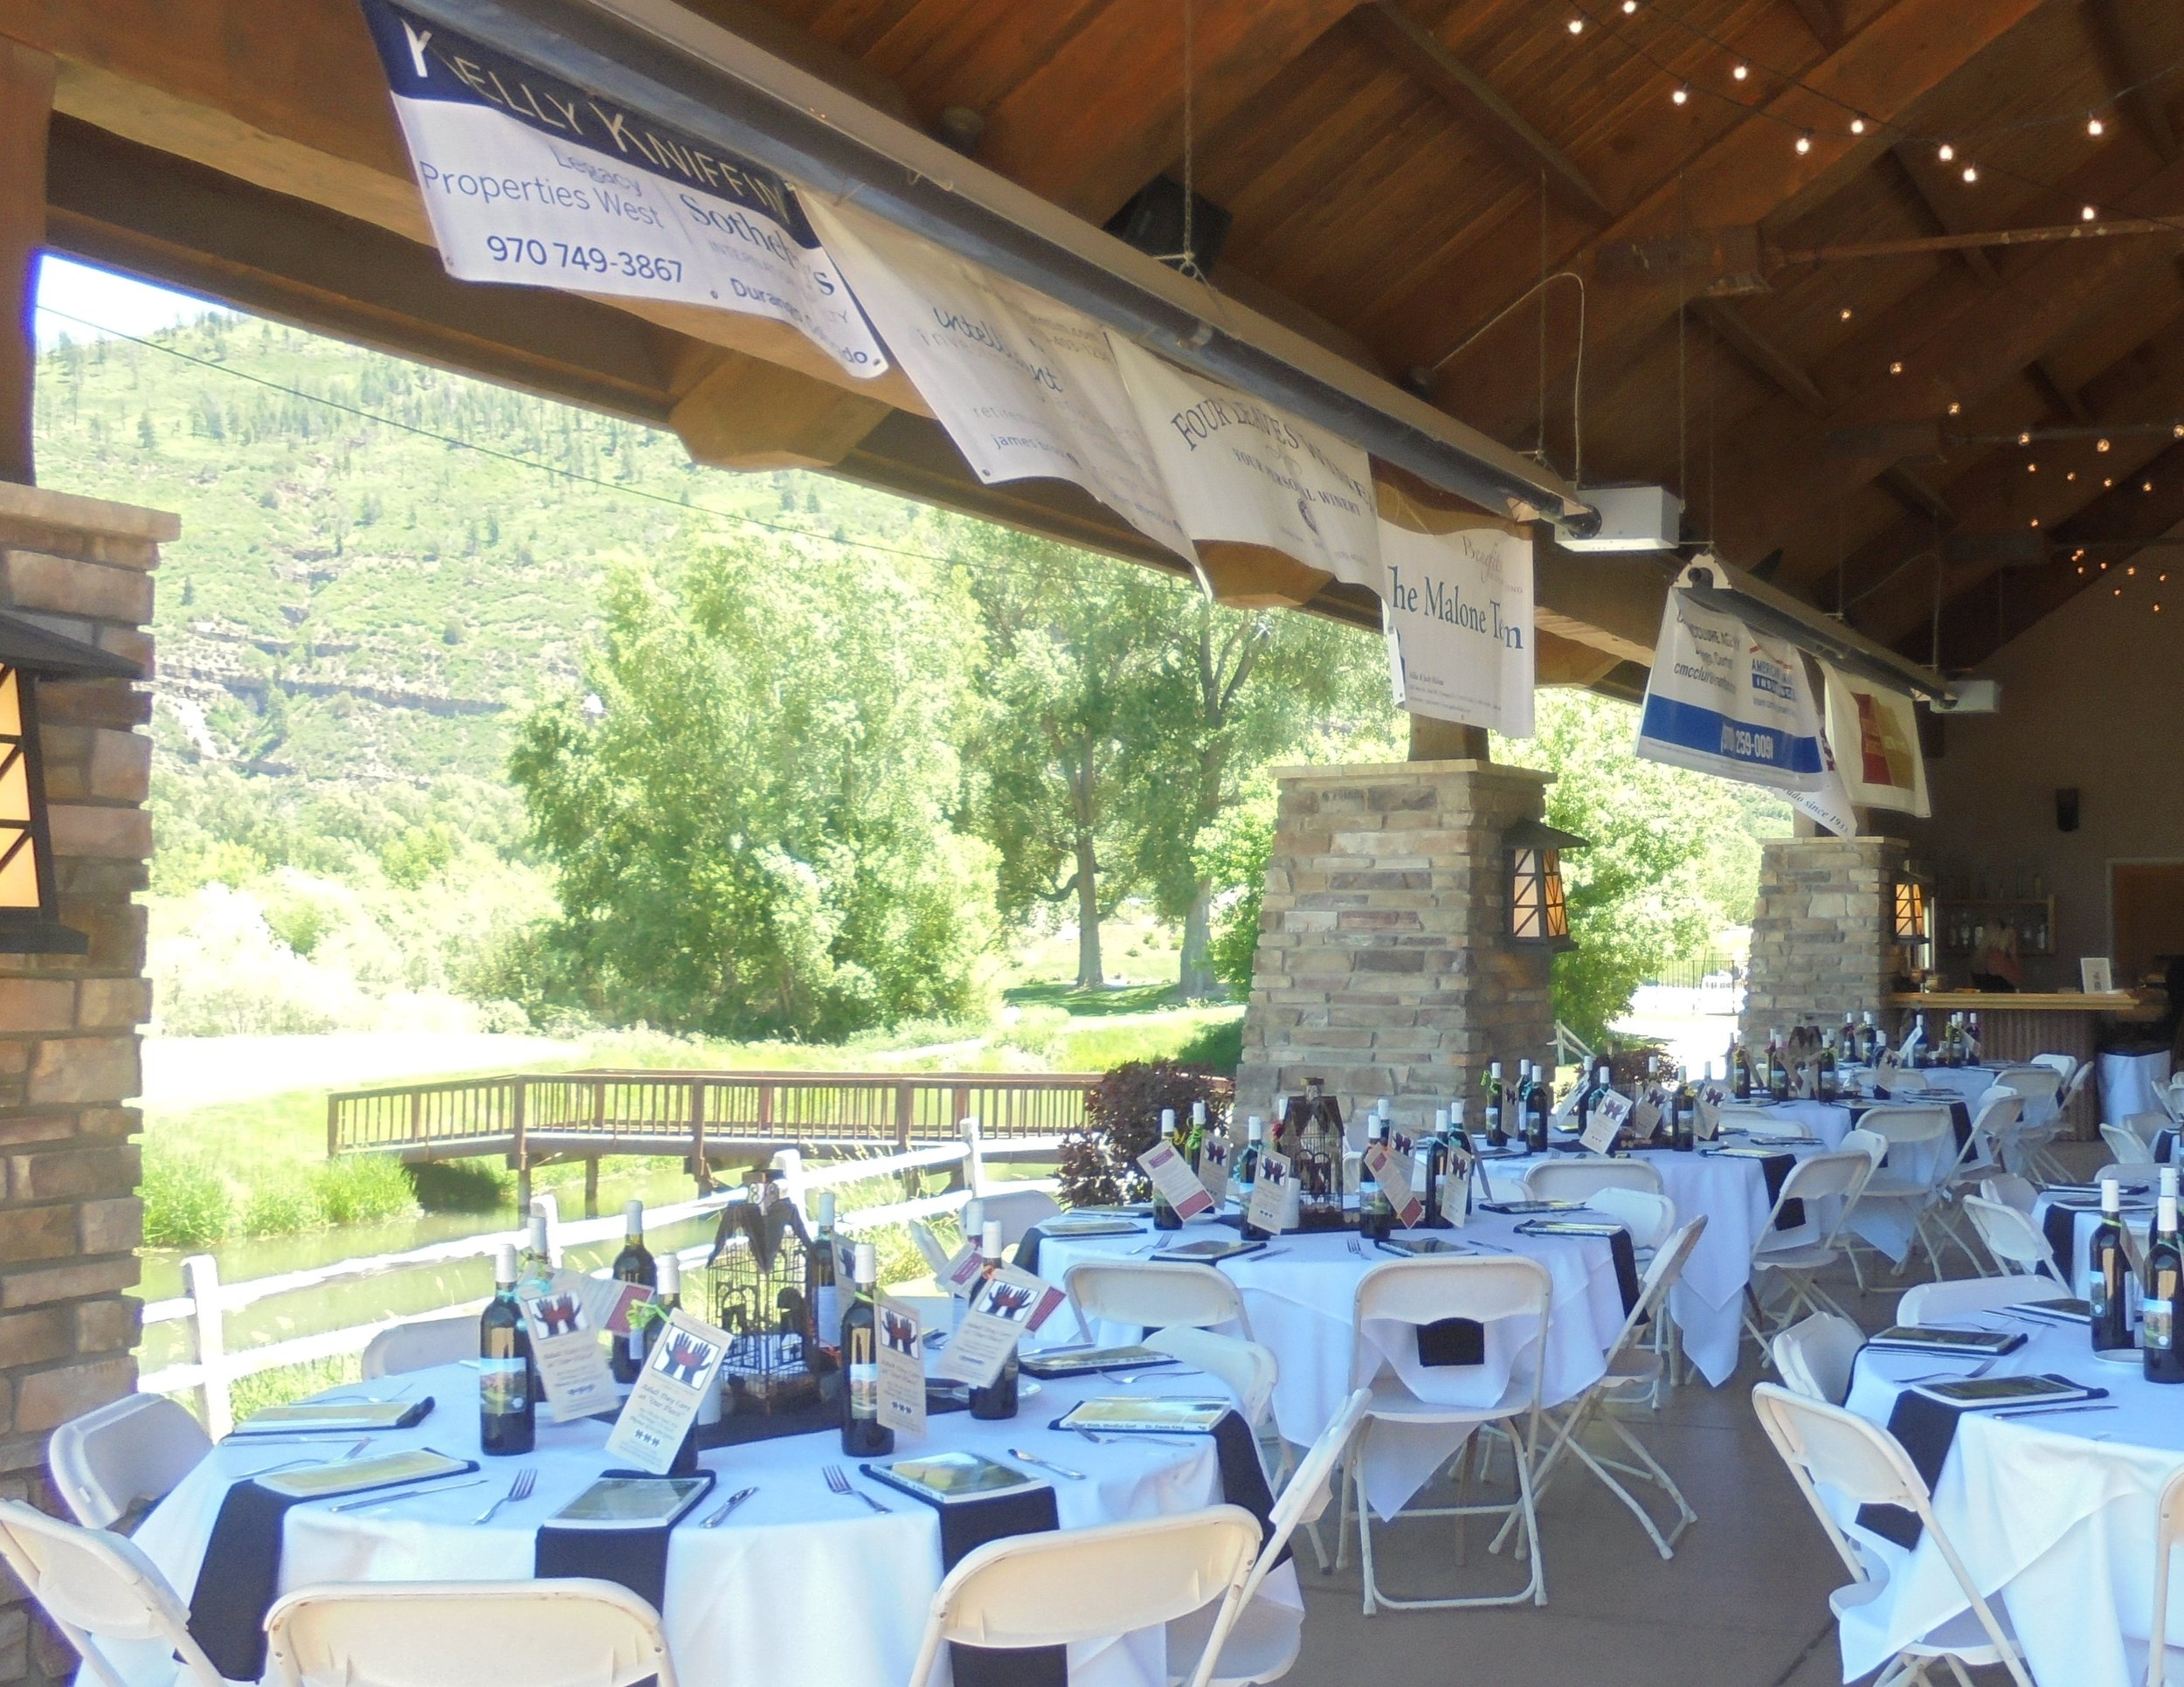 - Host your next social function at Dalton Ranch's beautiful facility. The spacious pavilion can host up to 120 guests, while the clubhouse and outdoor patio also offer ample social and dining setting.Private meeting rooms can comfortably host 20+ Clubhouse event rooms can host 40+ Holiday parties, celebrations can accommodate 75+